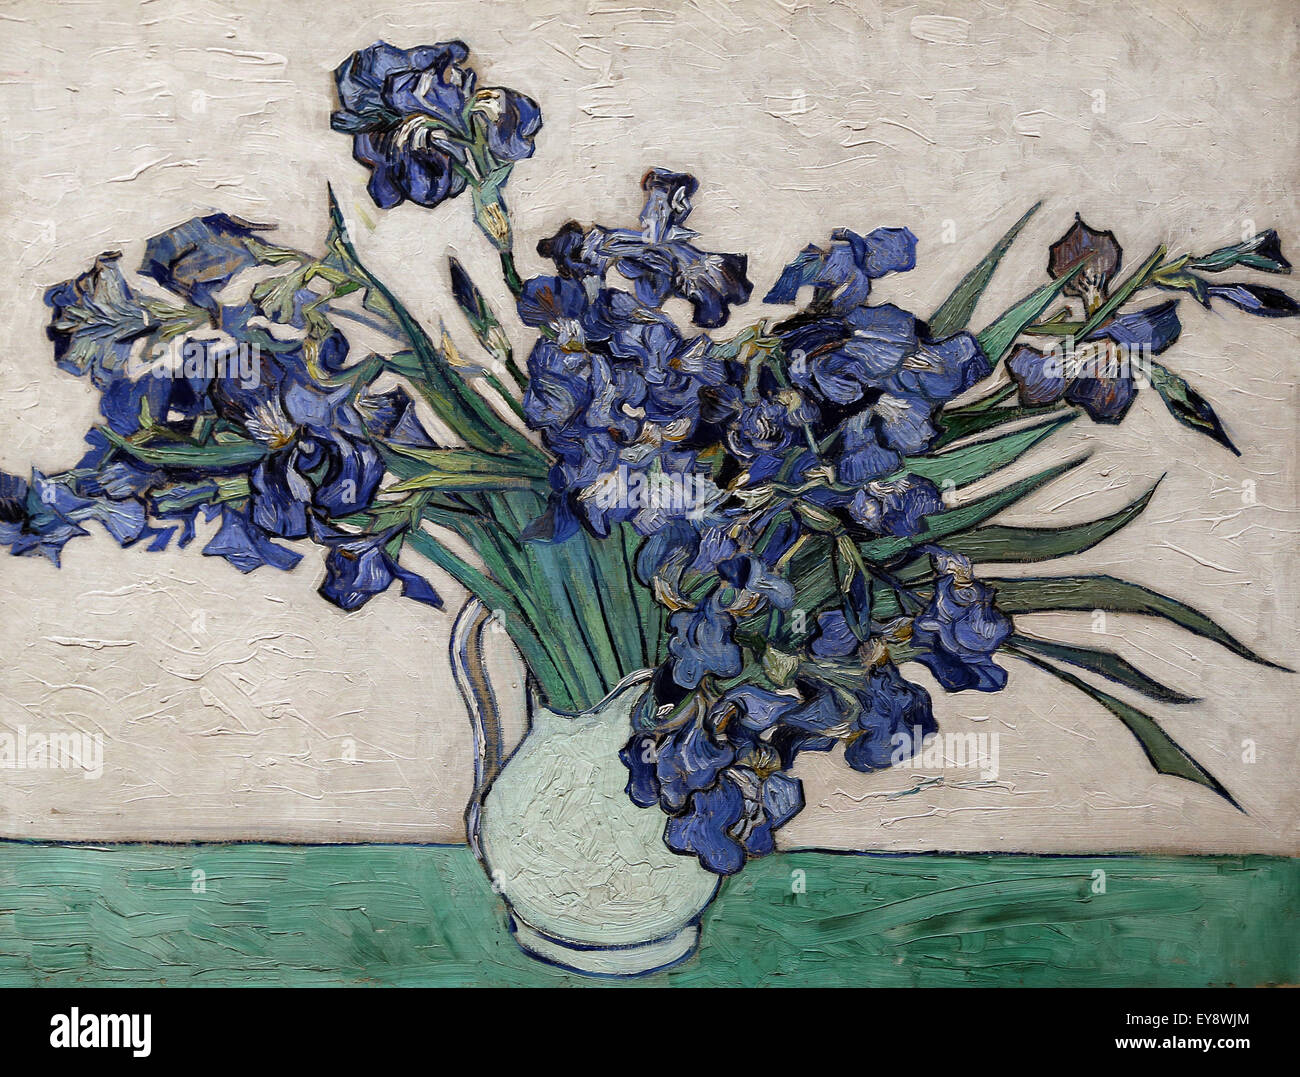 the art and life of vincent van gogh a netherlands painter Important art by vincent van gogh  in nuenen in the netherlands, van gogh strove to depict the people and their lives truthfully  is given new life through .